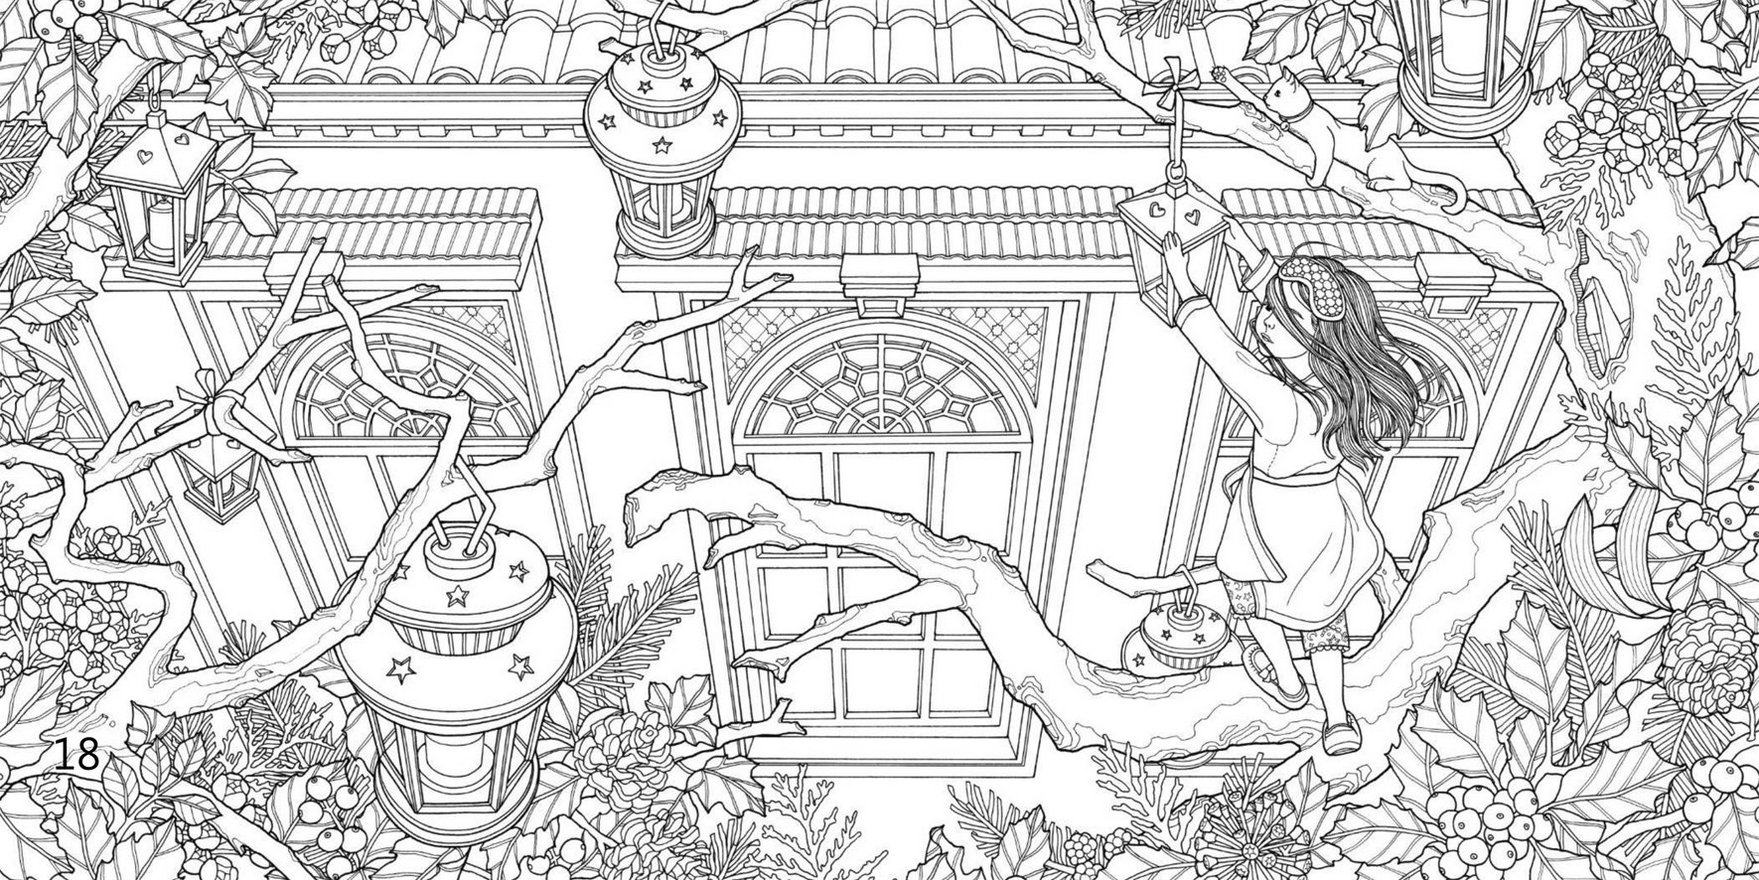 the-night-voyage-coloring-book-a-magical-adventure